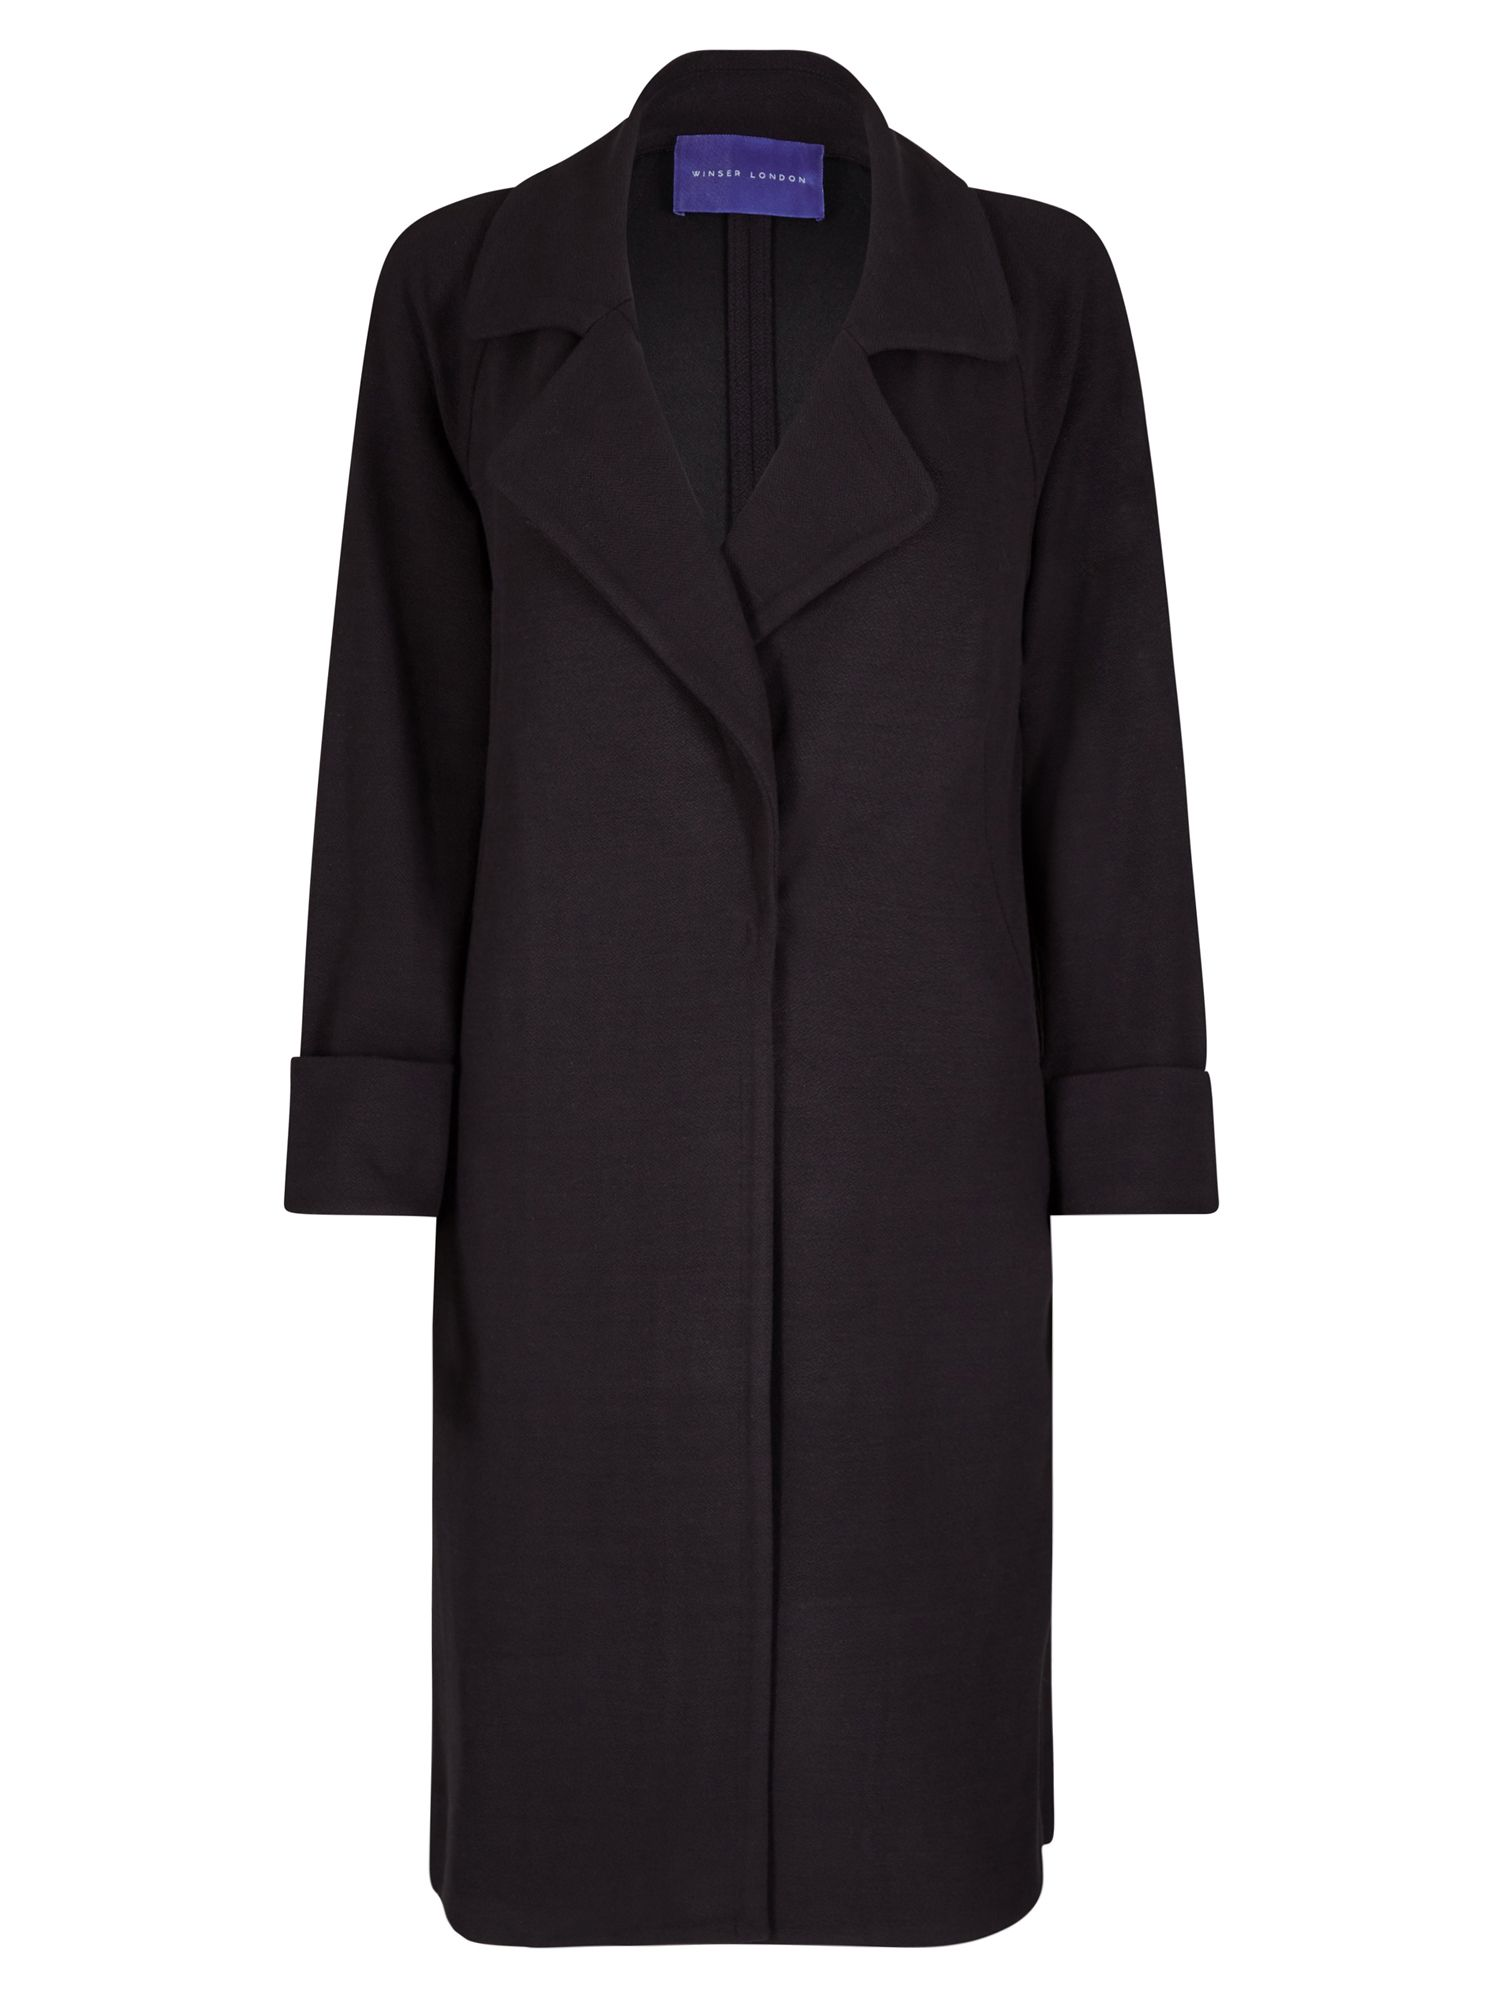 Winser London Crepe Jersey A Line Coat, Black